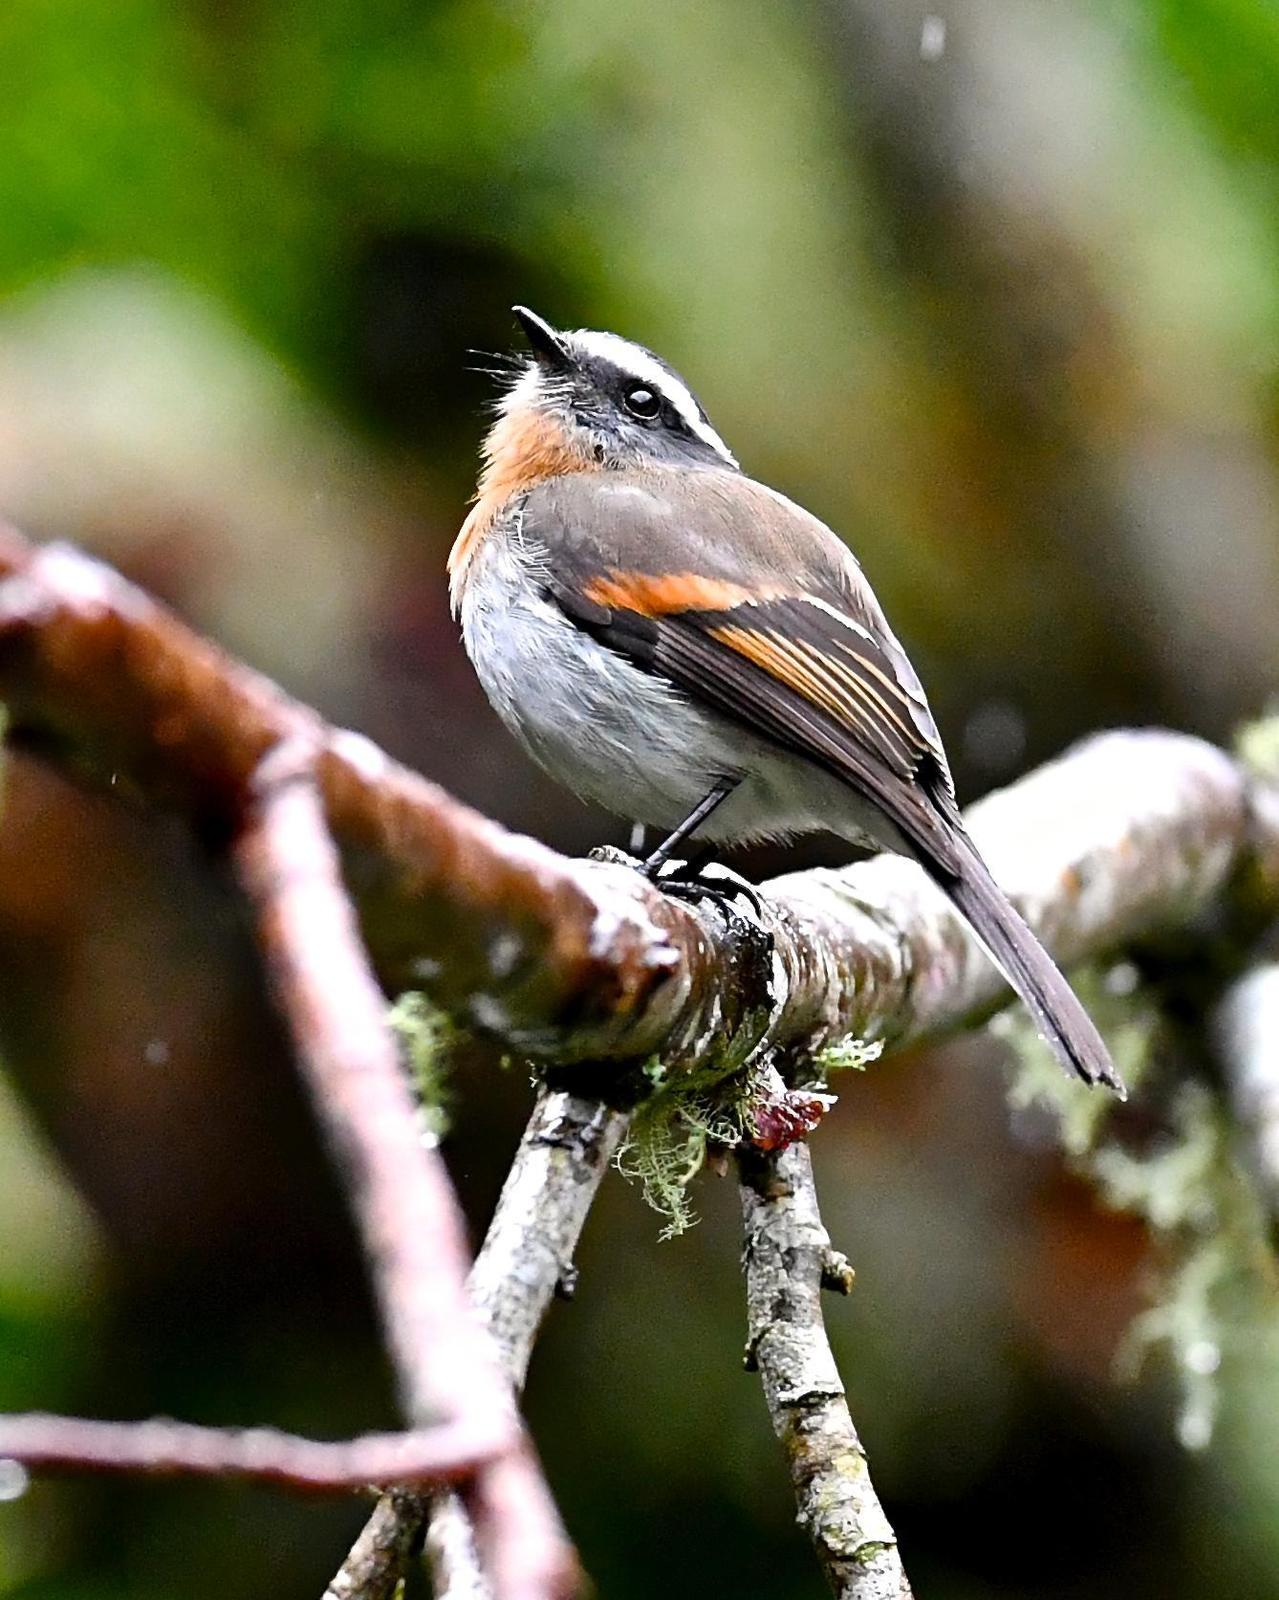 Rufous-breasted Chat-Tyrant Photo by Gerald Friesen